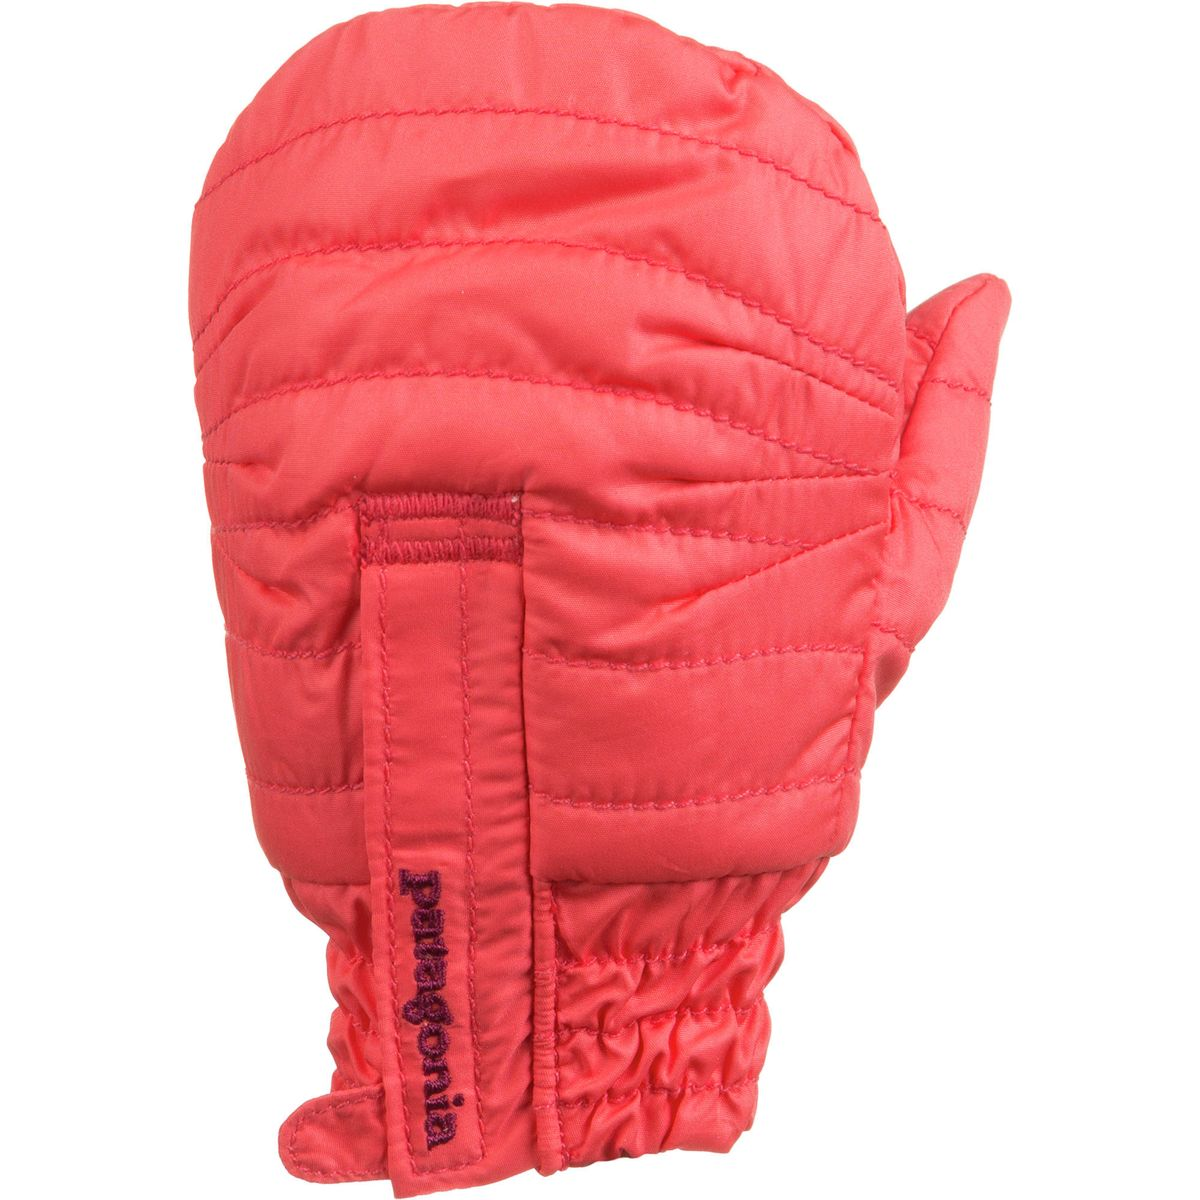 Patagonia Baby Puff Mitten - Infant Girls